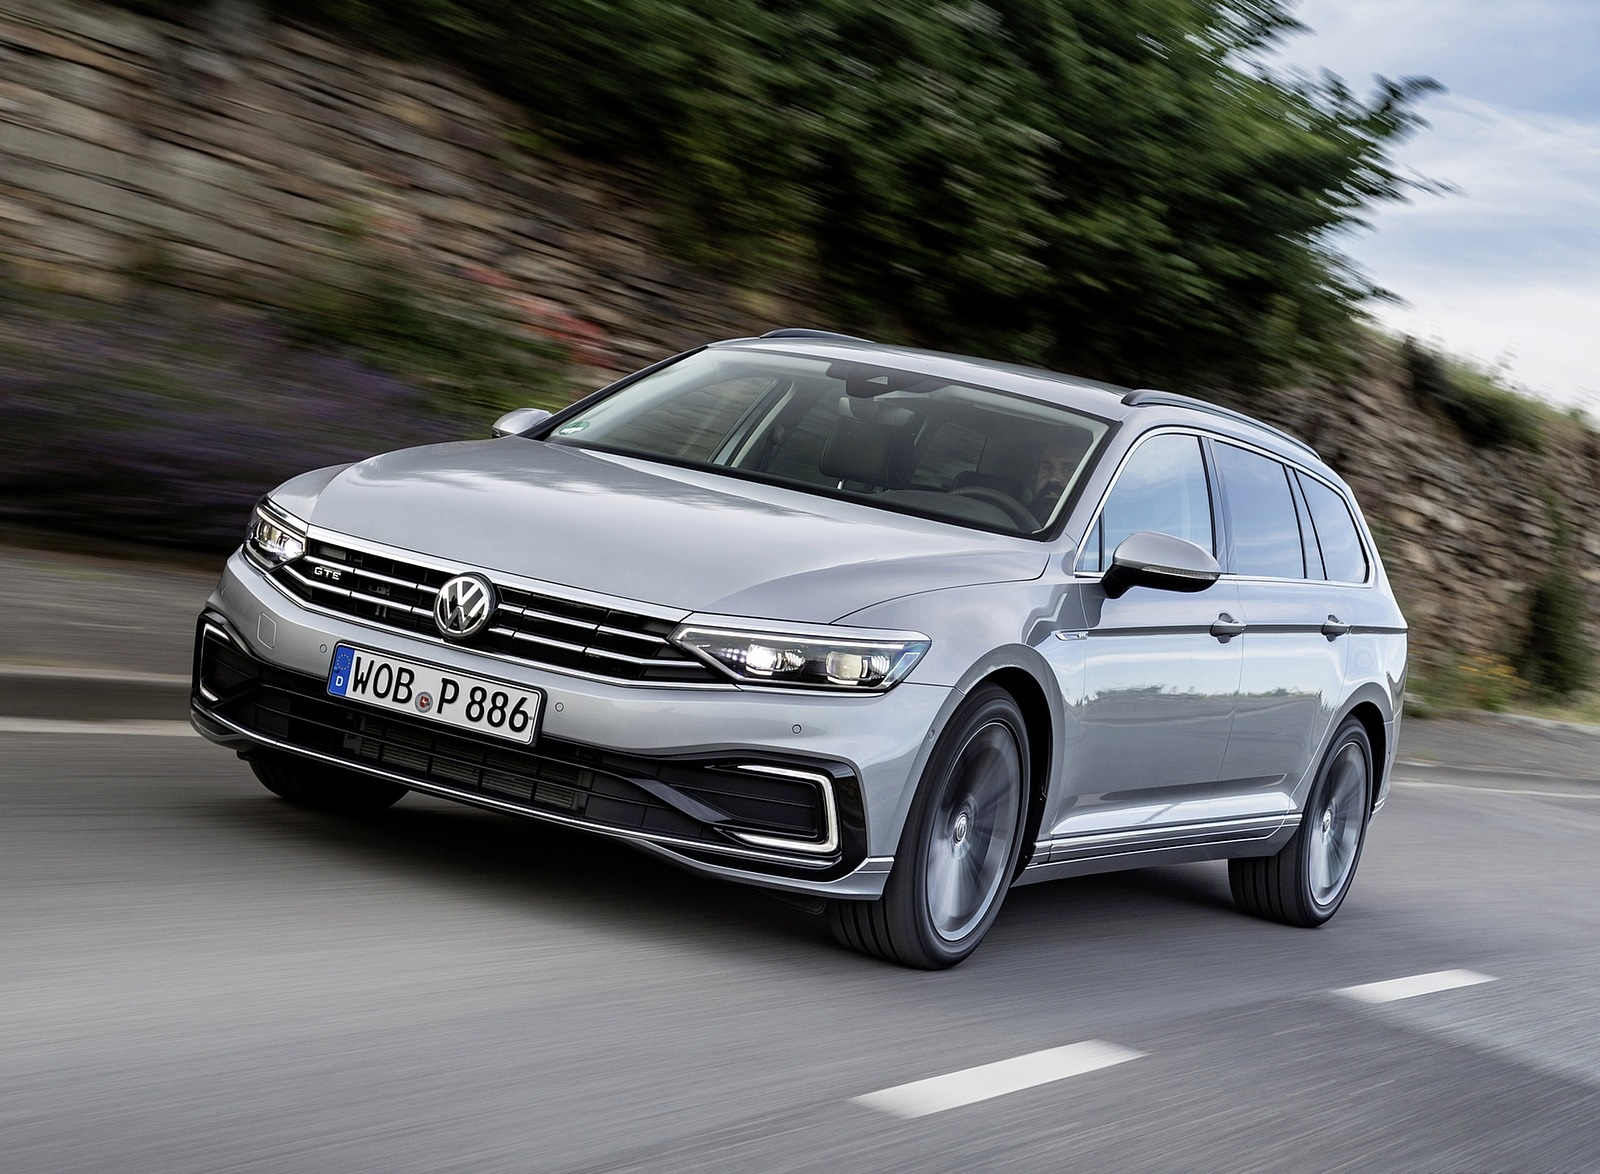 2020 Volkswagen Passat GTE Variant (Plug-In Hybrid EU-Spec) Front Three-Quarter Wallpapers (2)